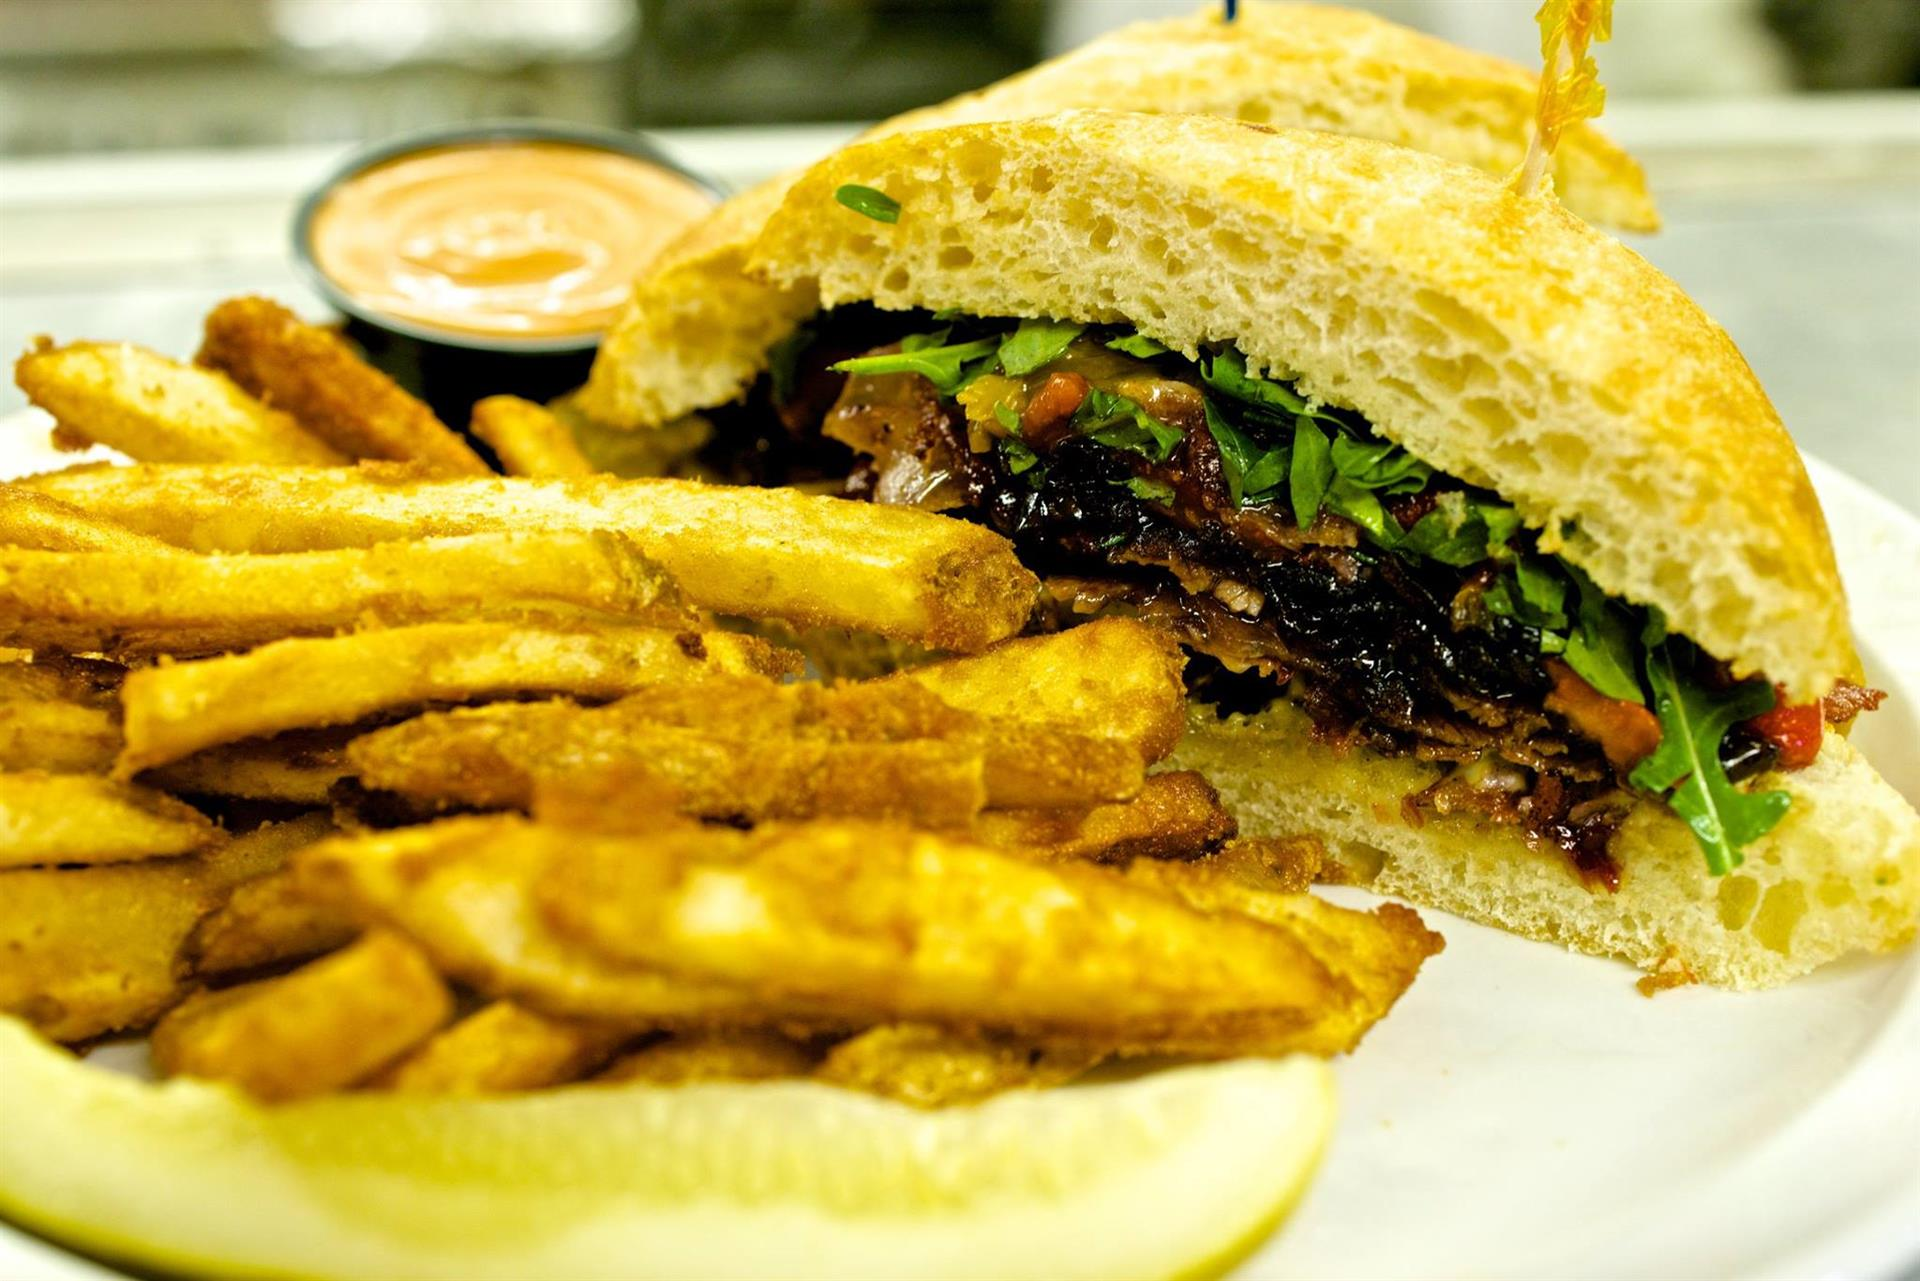 bbq sandwich with beef, lettuce, tomato and a side of french fries